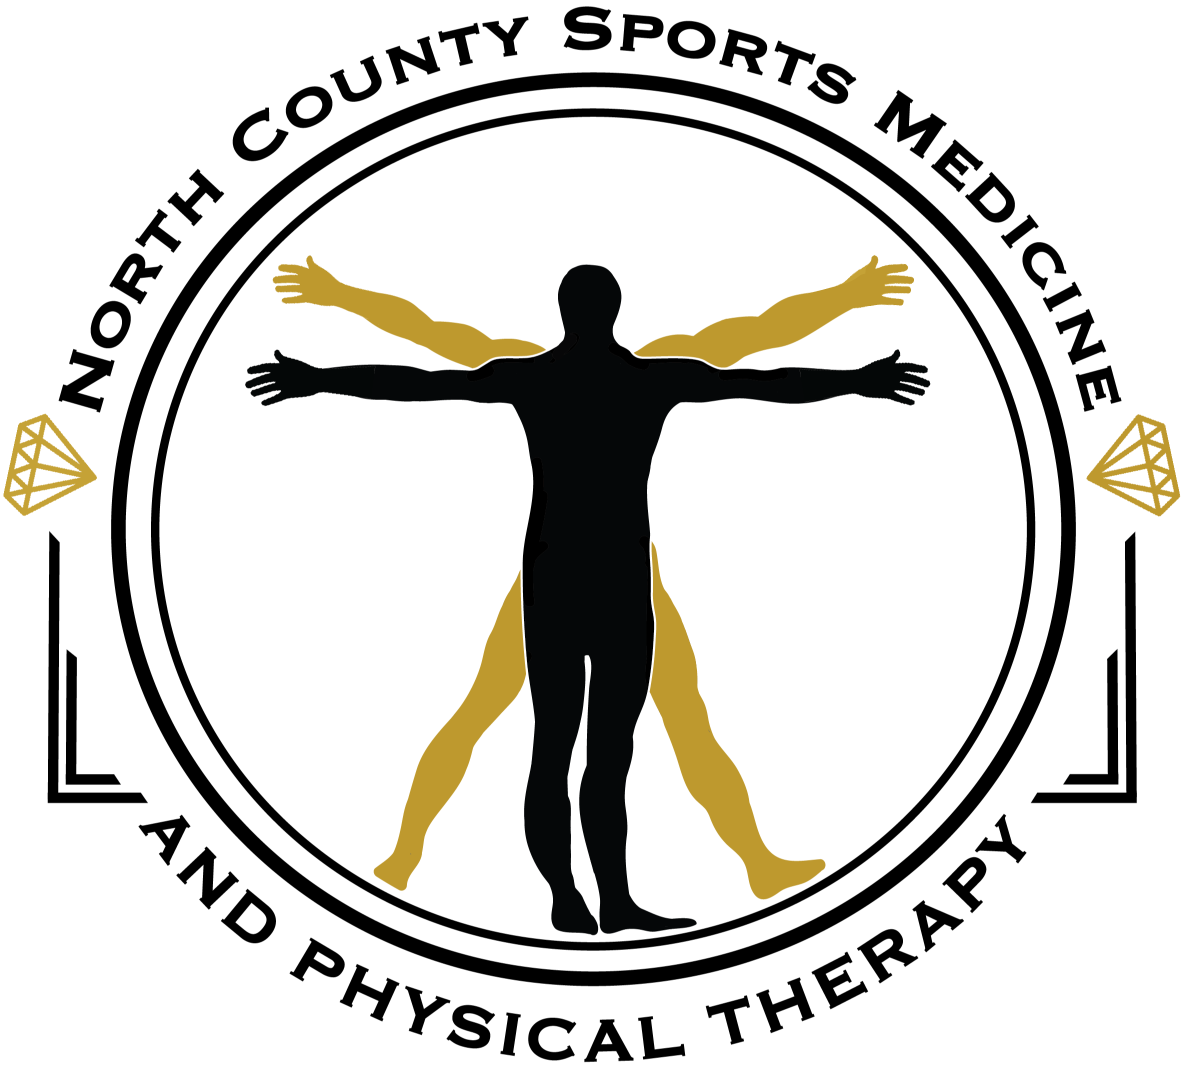 North County Sports Medicine and Physical Therapy